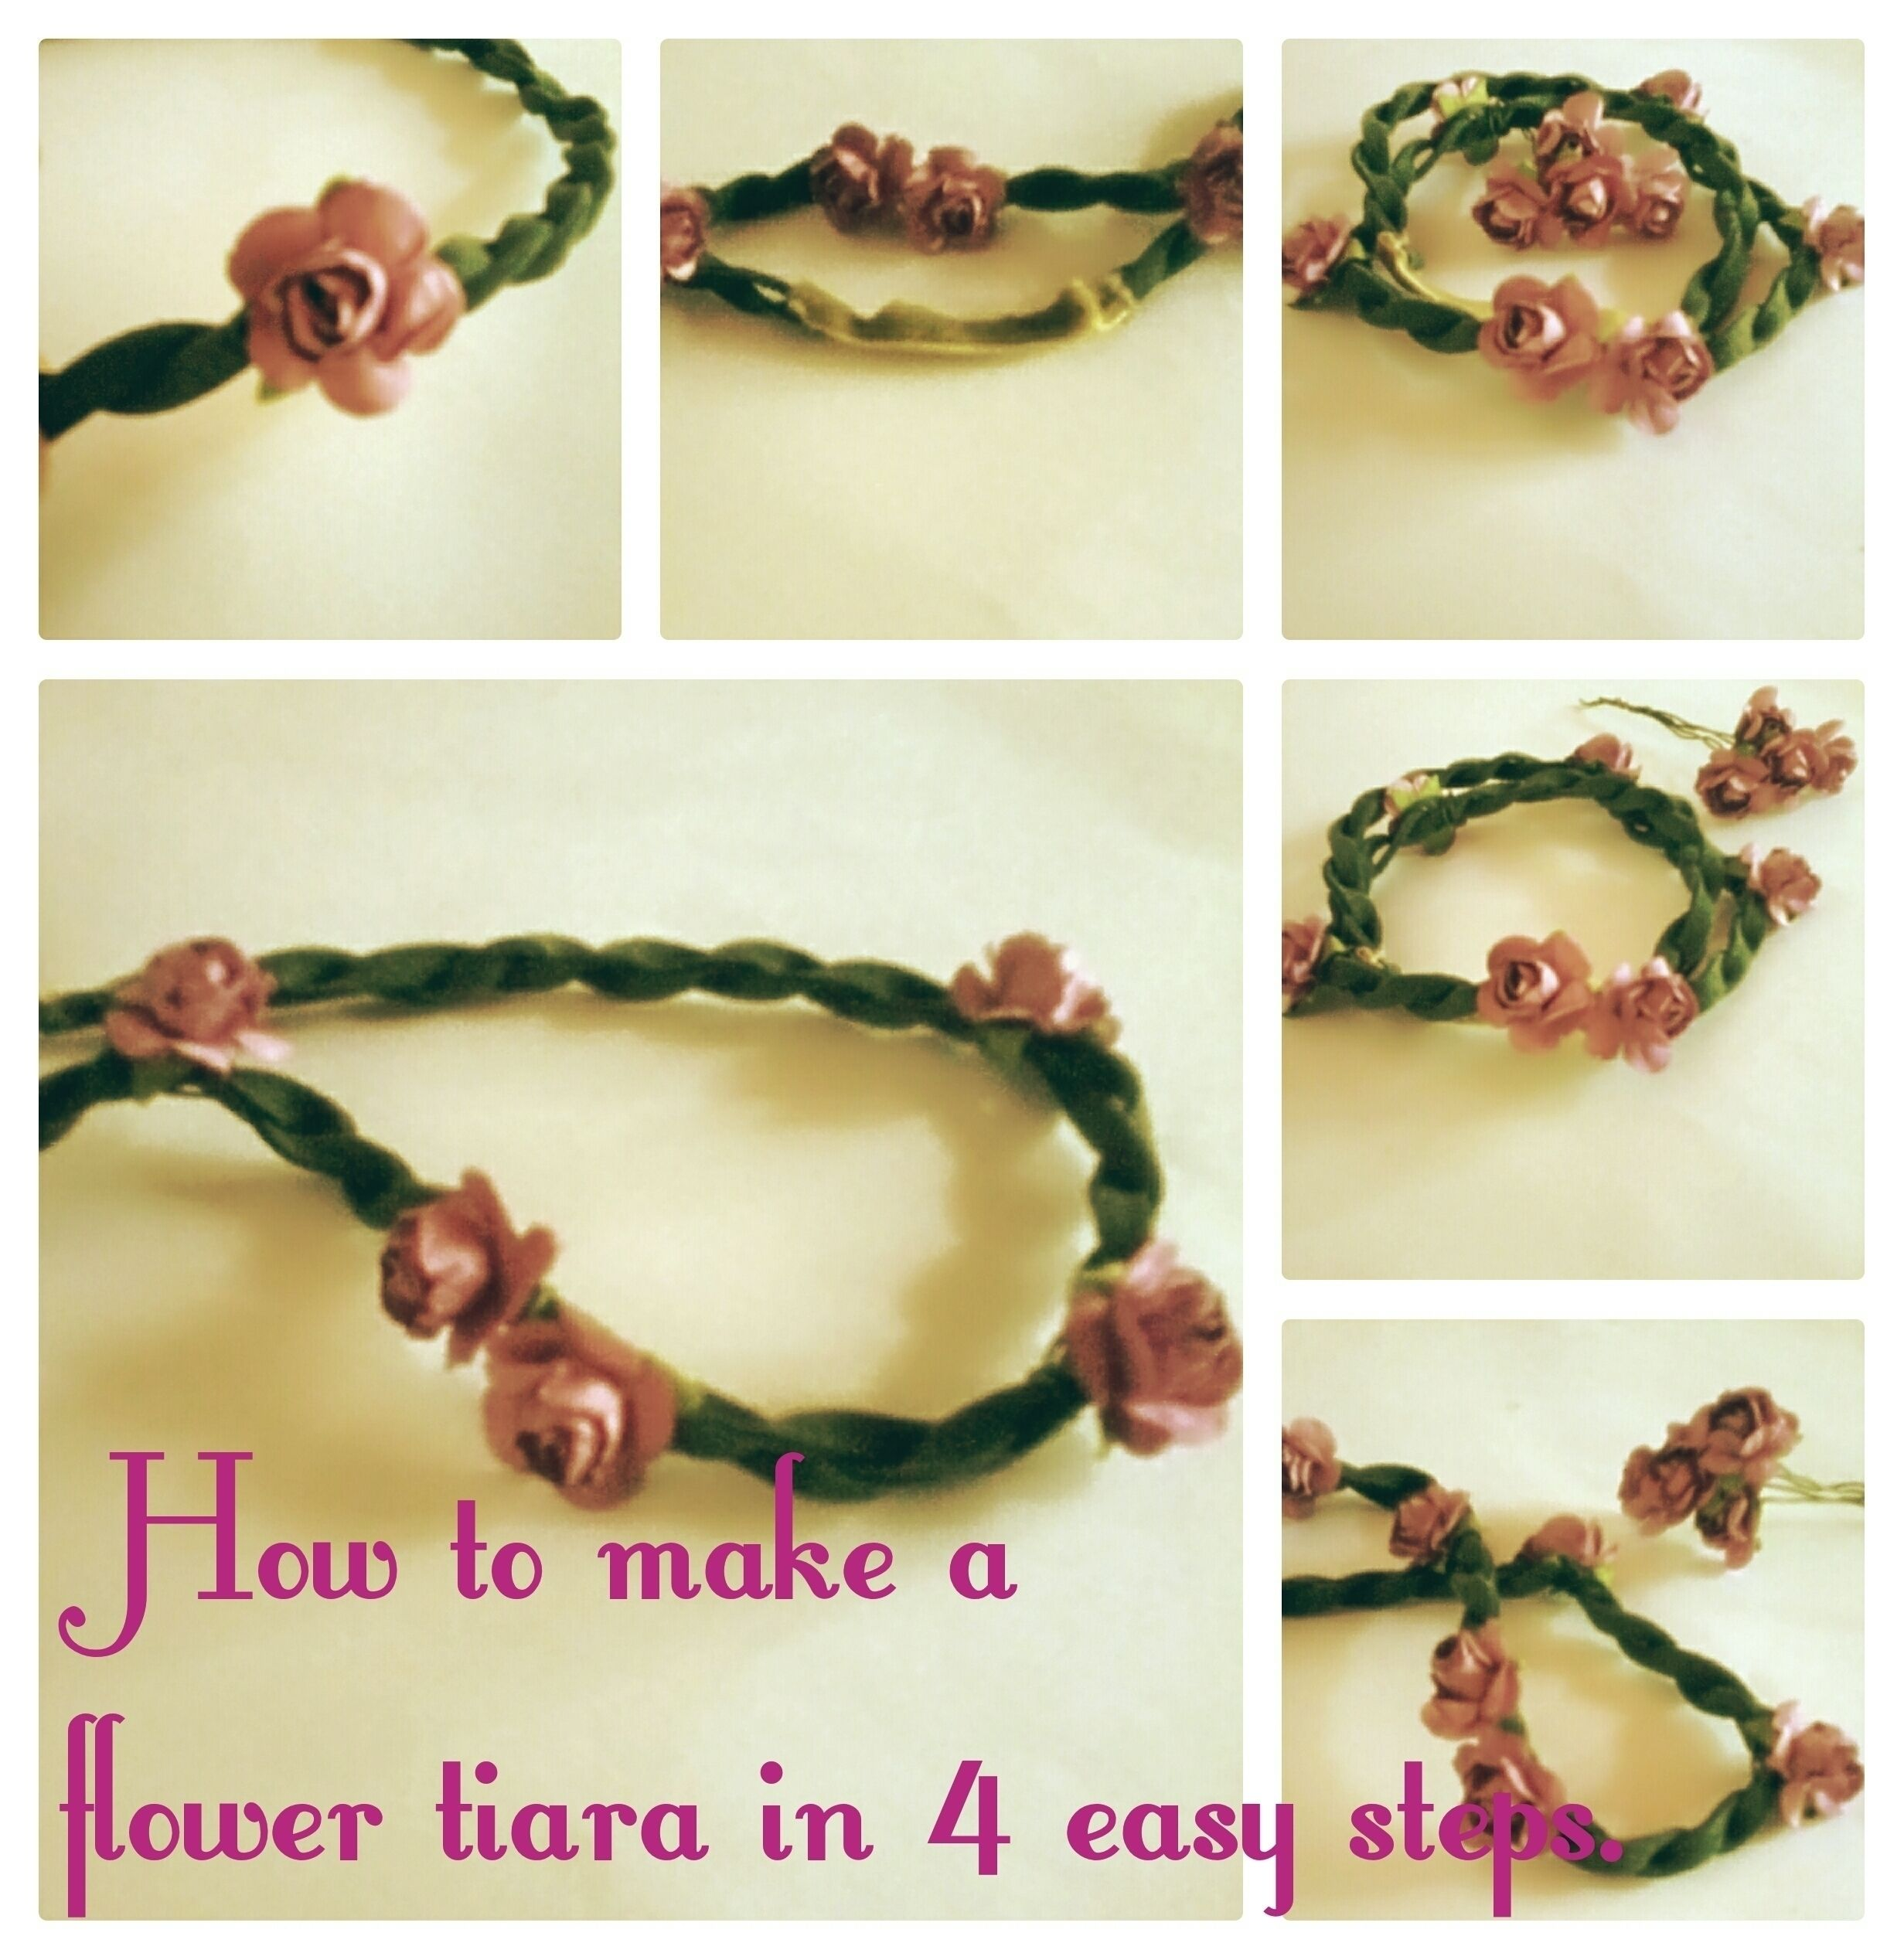 How to make a flower tiara in 4 easy steps flower tiara how to make a flower tiara in 4 easy steps izmirmasajfo Gallery